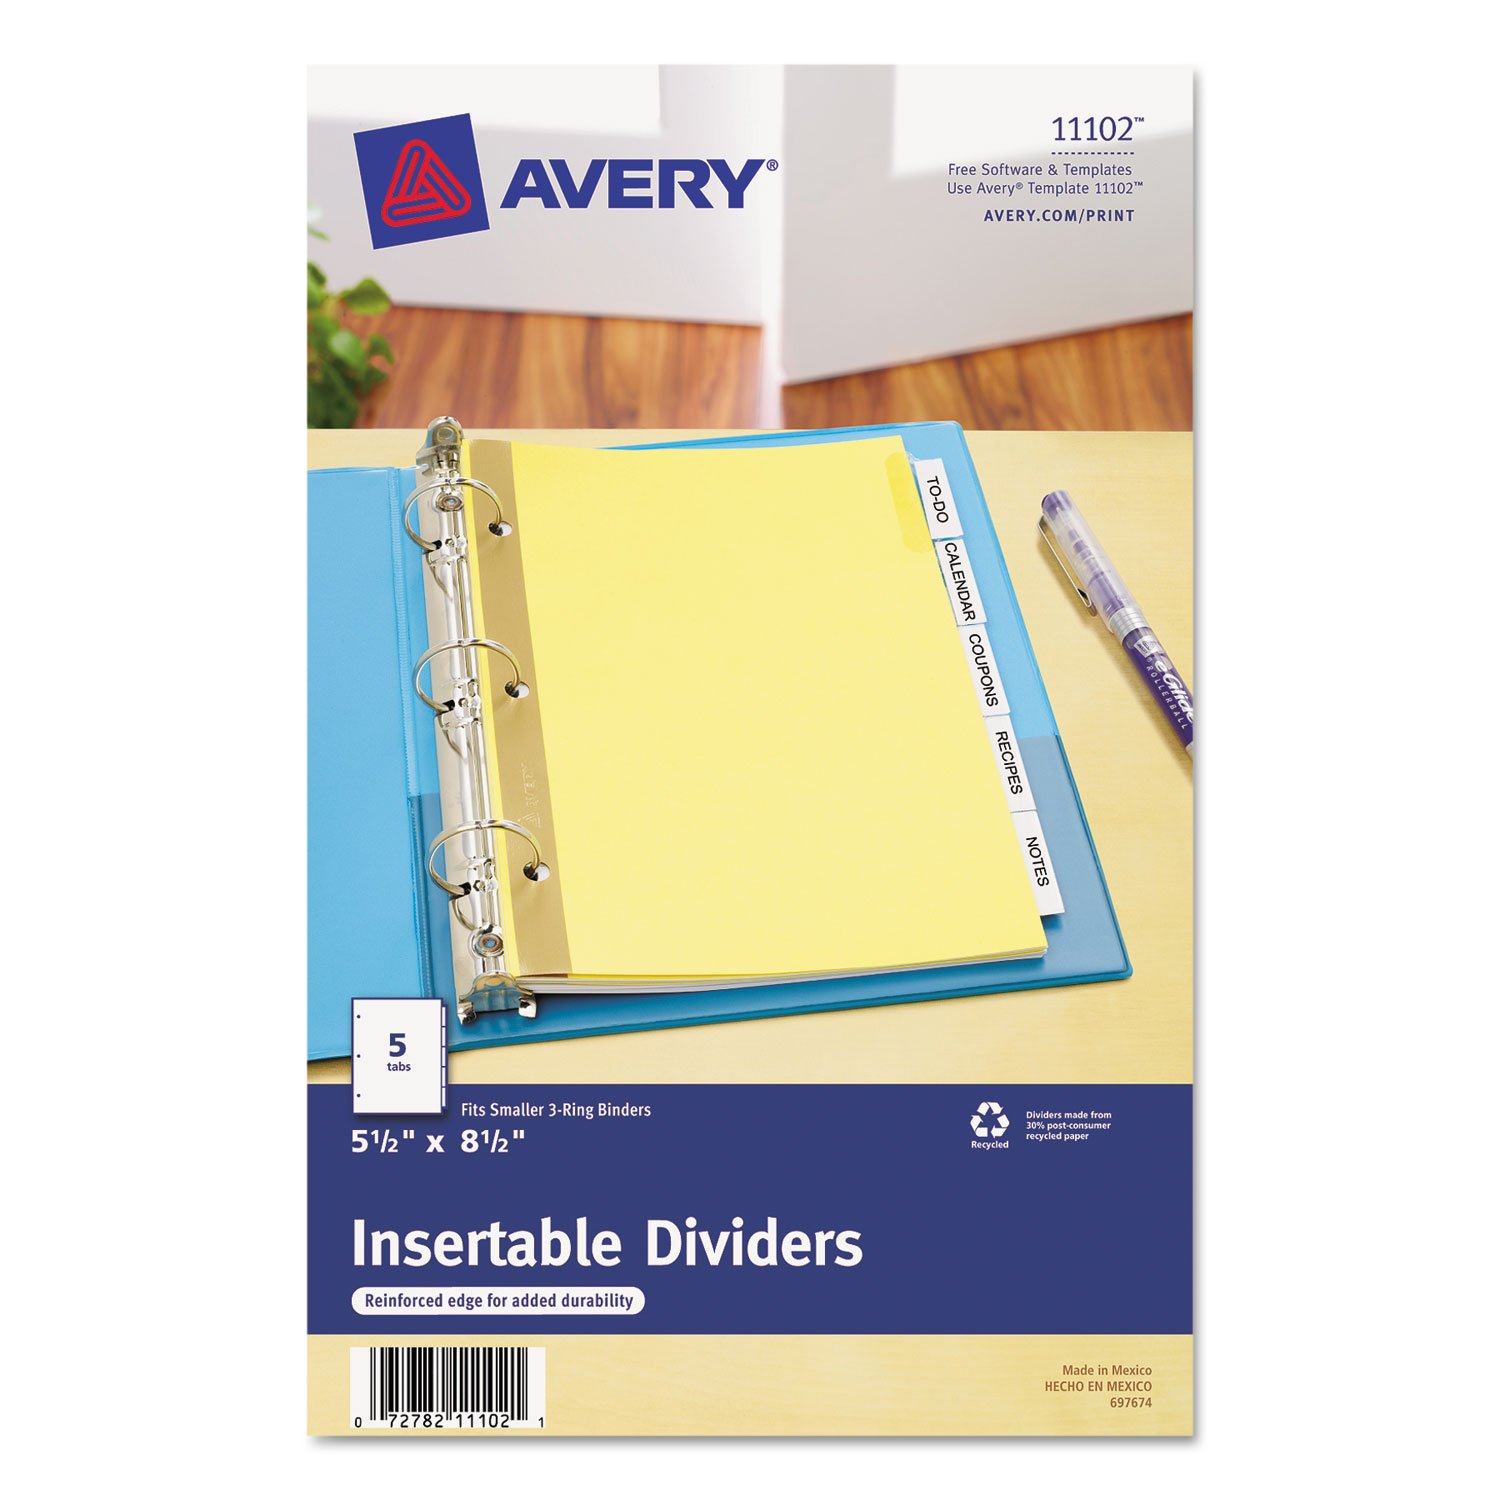 """Avery 11102 Insertable Dividers,5-Tab,8-1/2""""x5-1/2"""",Buff Paper,Clear 8-1/2""""x5-1/2"""" Avery Dennison"""